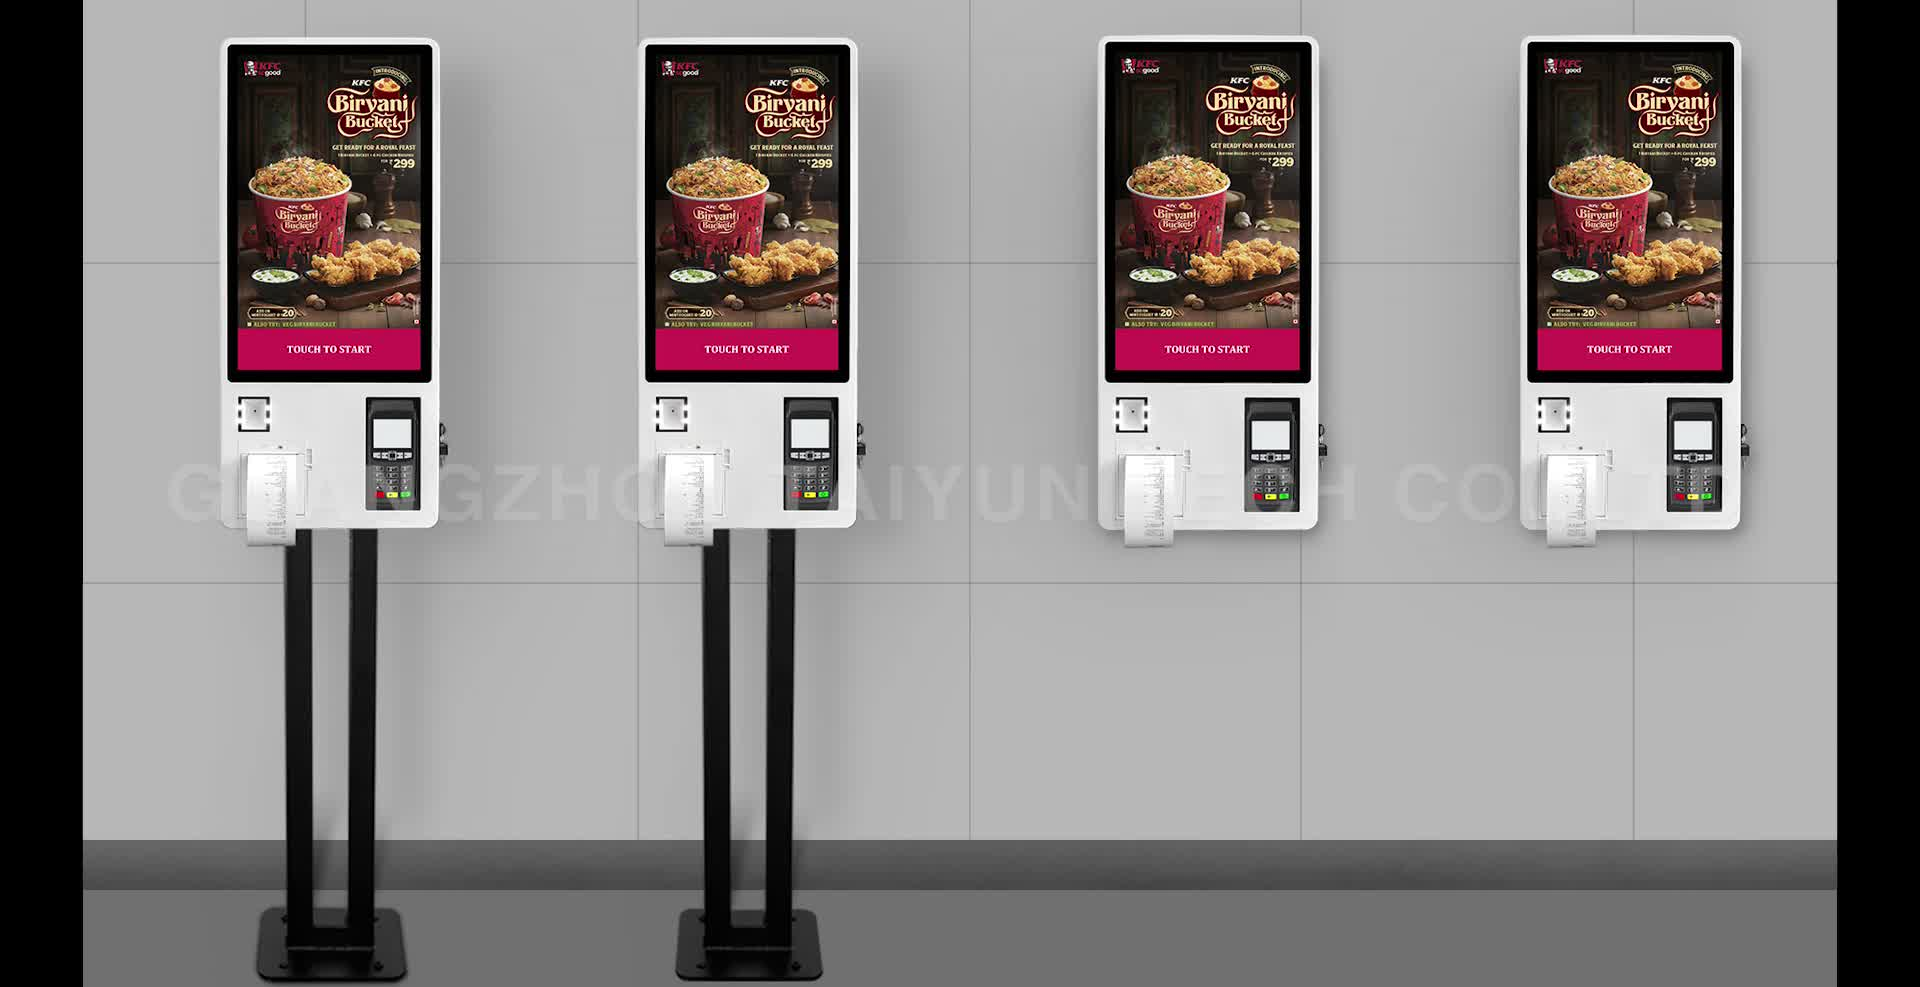 Fast Food Restaurant 24 Inch Touch Screen Self Service Ordering Kiosk With QR code Scanner / Thermal Printer